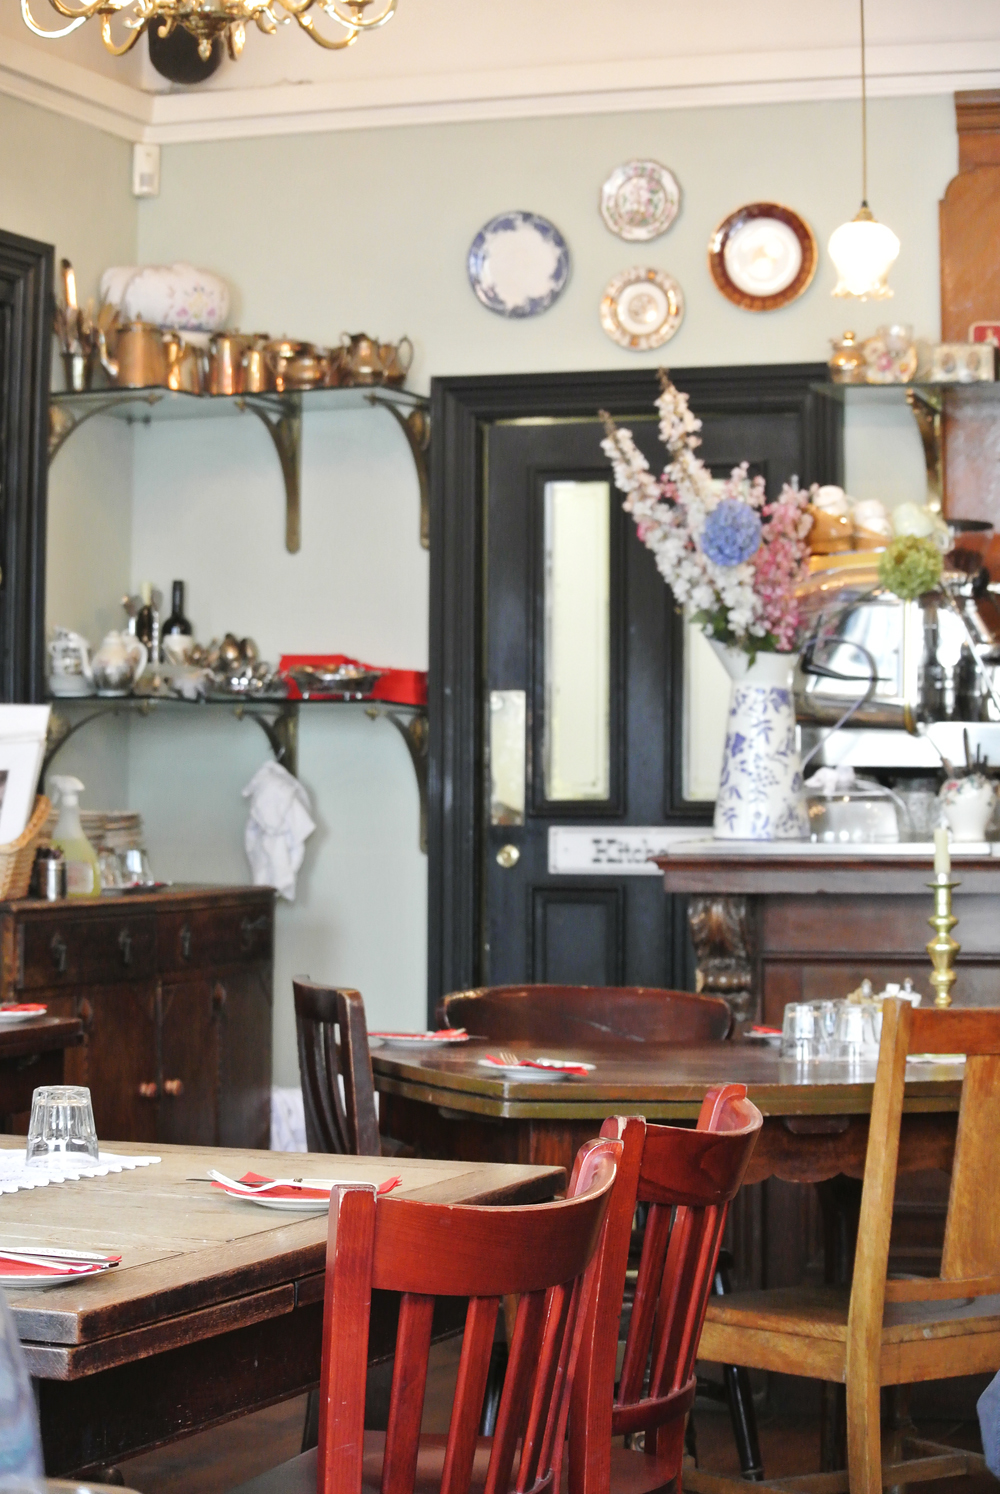 The Tearooms at the Butterfly and the Pig